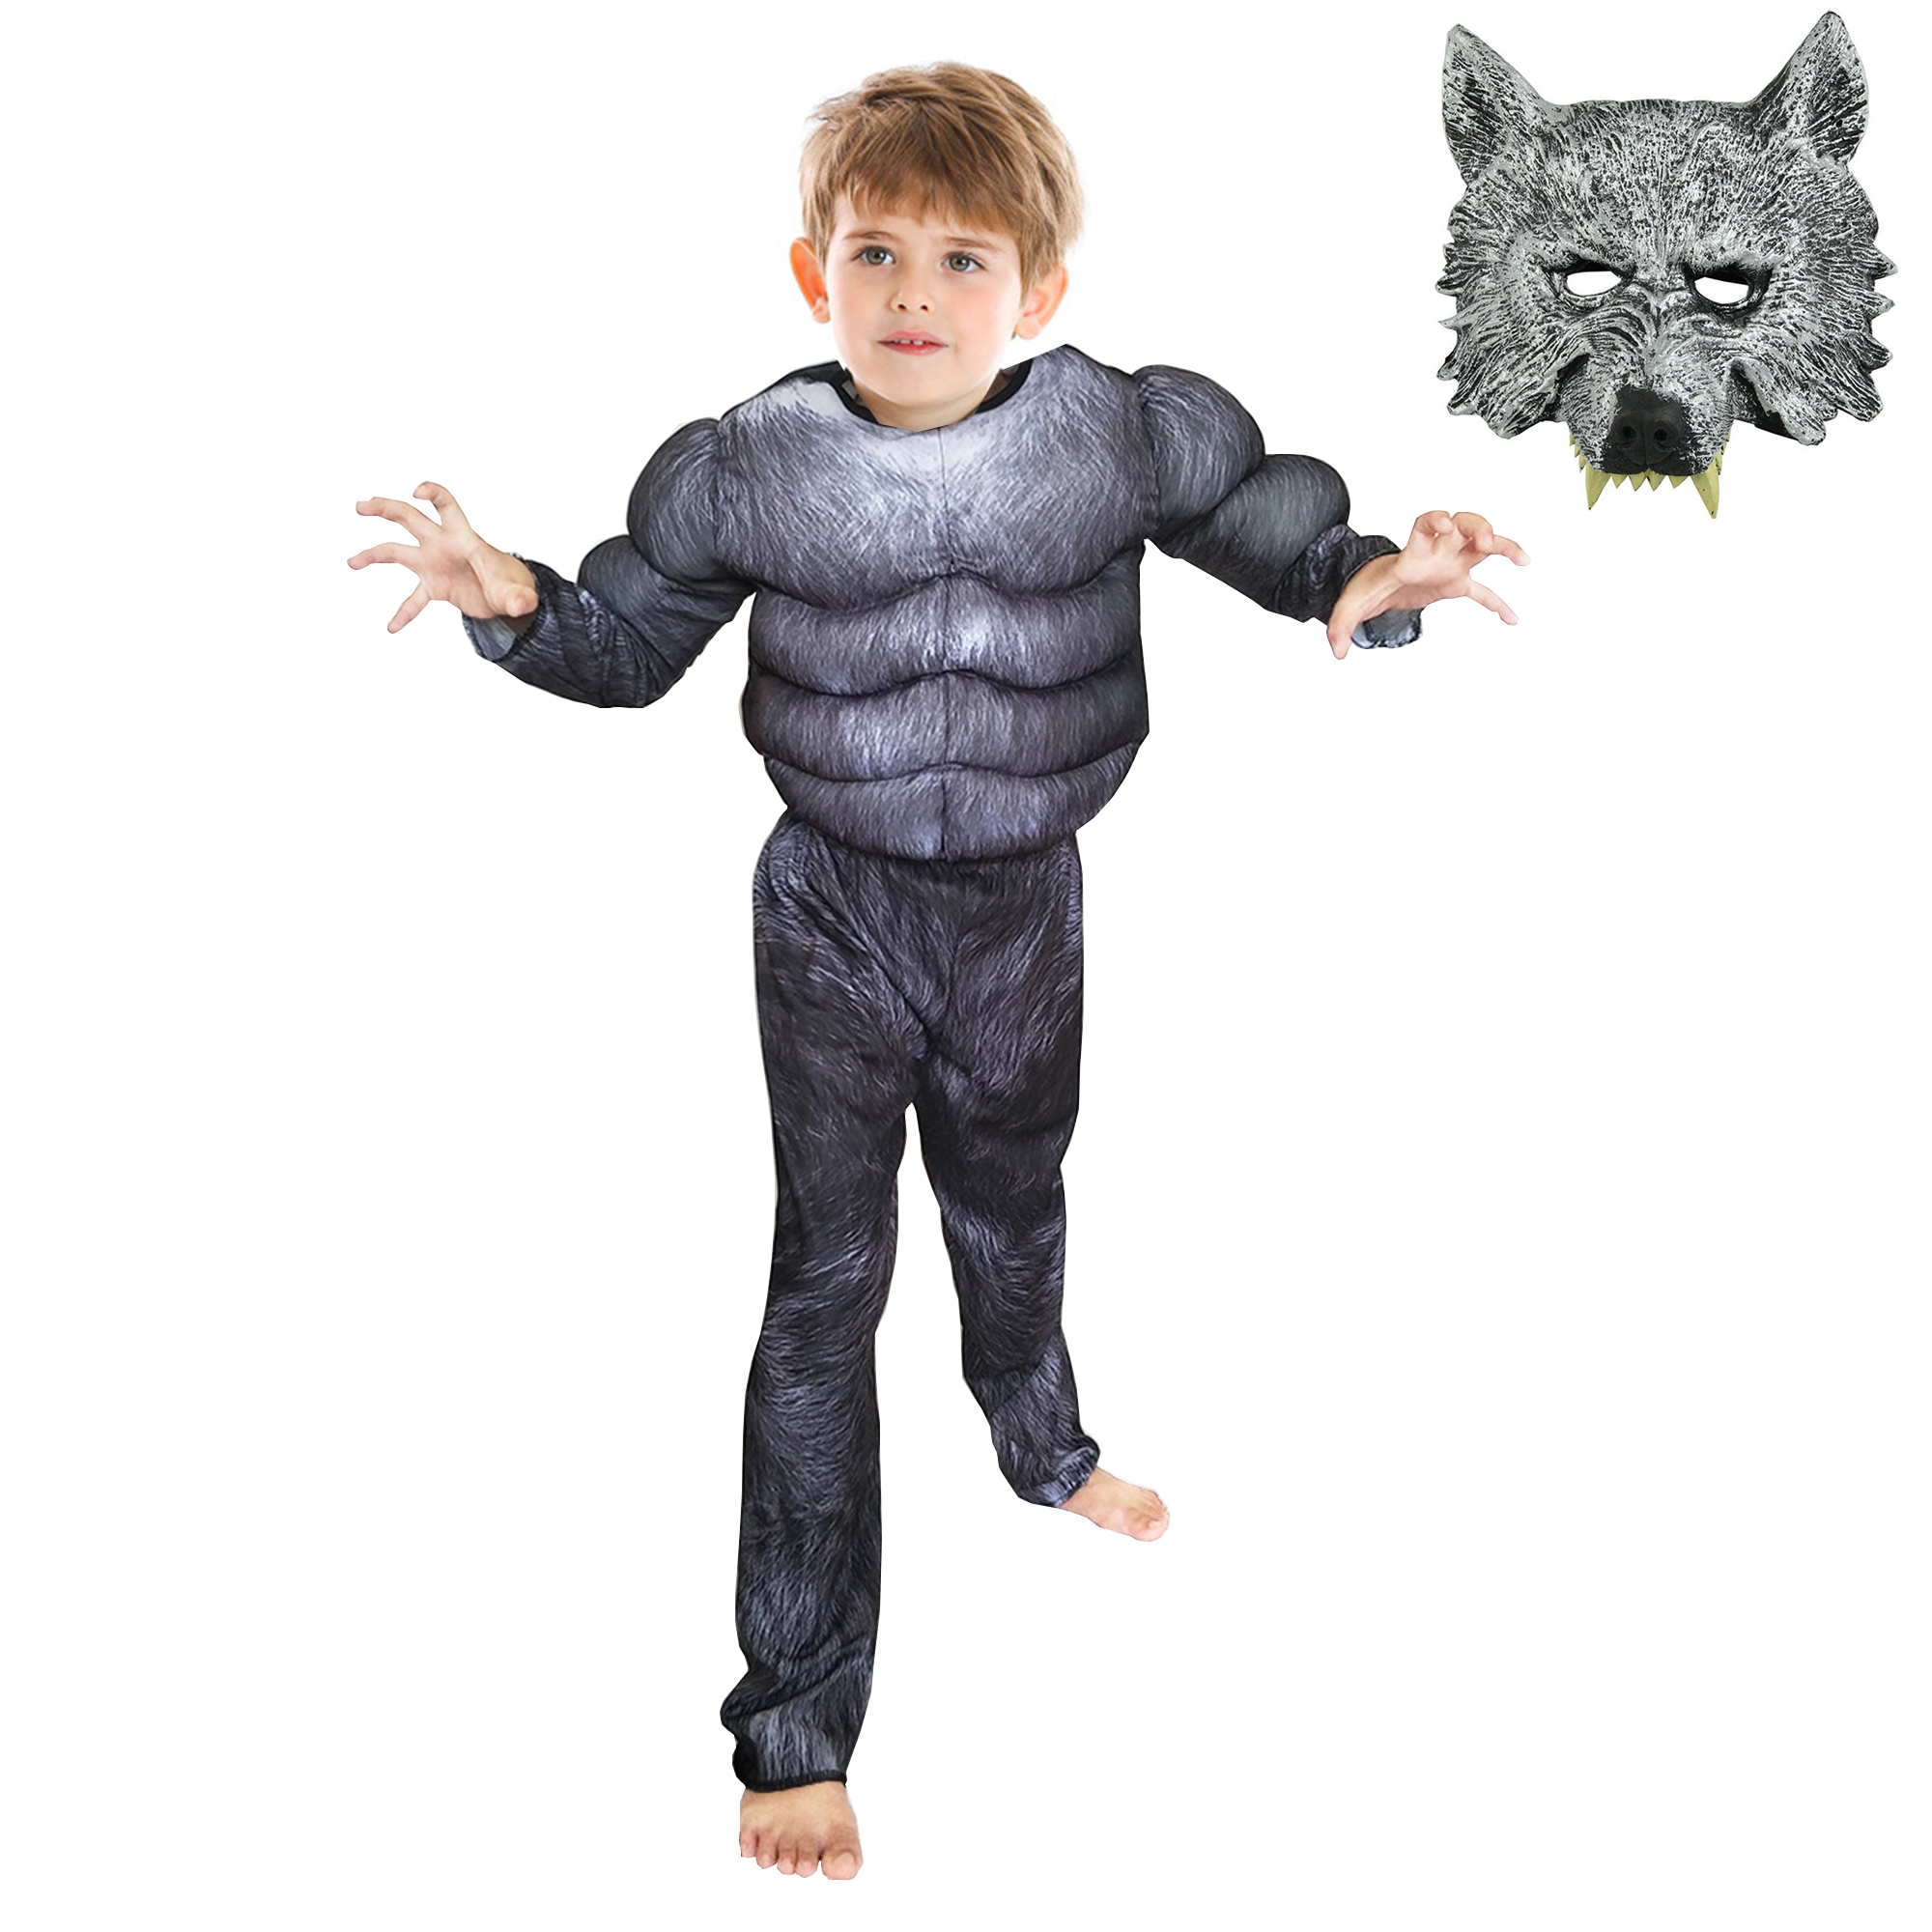 Play Dress Up Costume Gray Wolf Mask Dress Up Halloween Toddler Gift Mask Kid/'s Mask Play Play Mask Party Favor Wolf